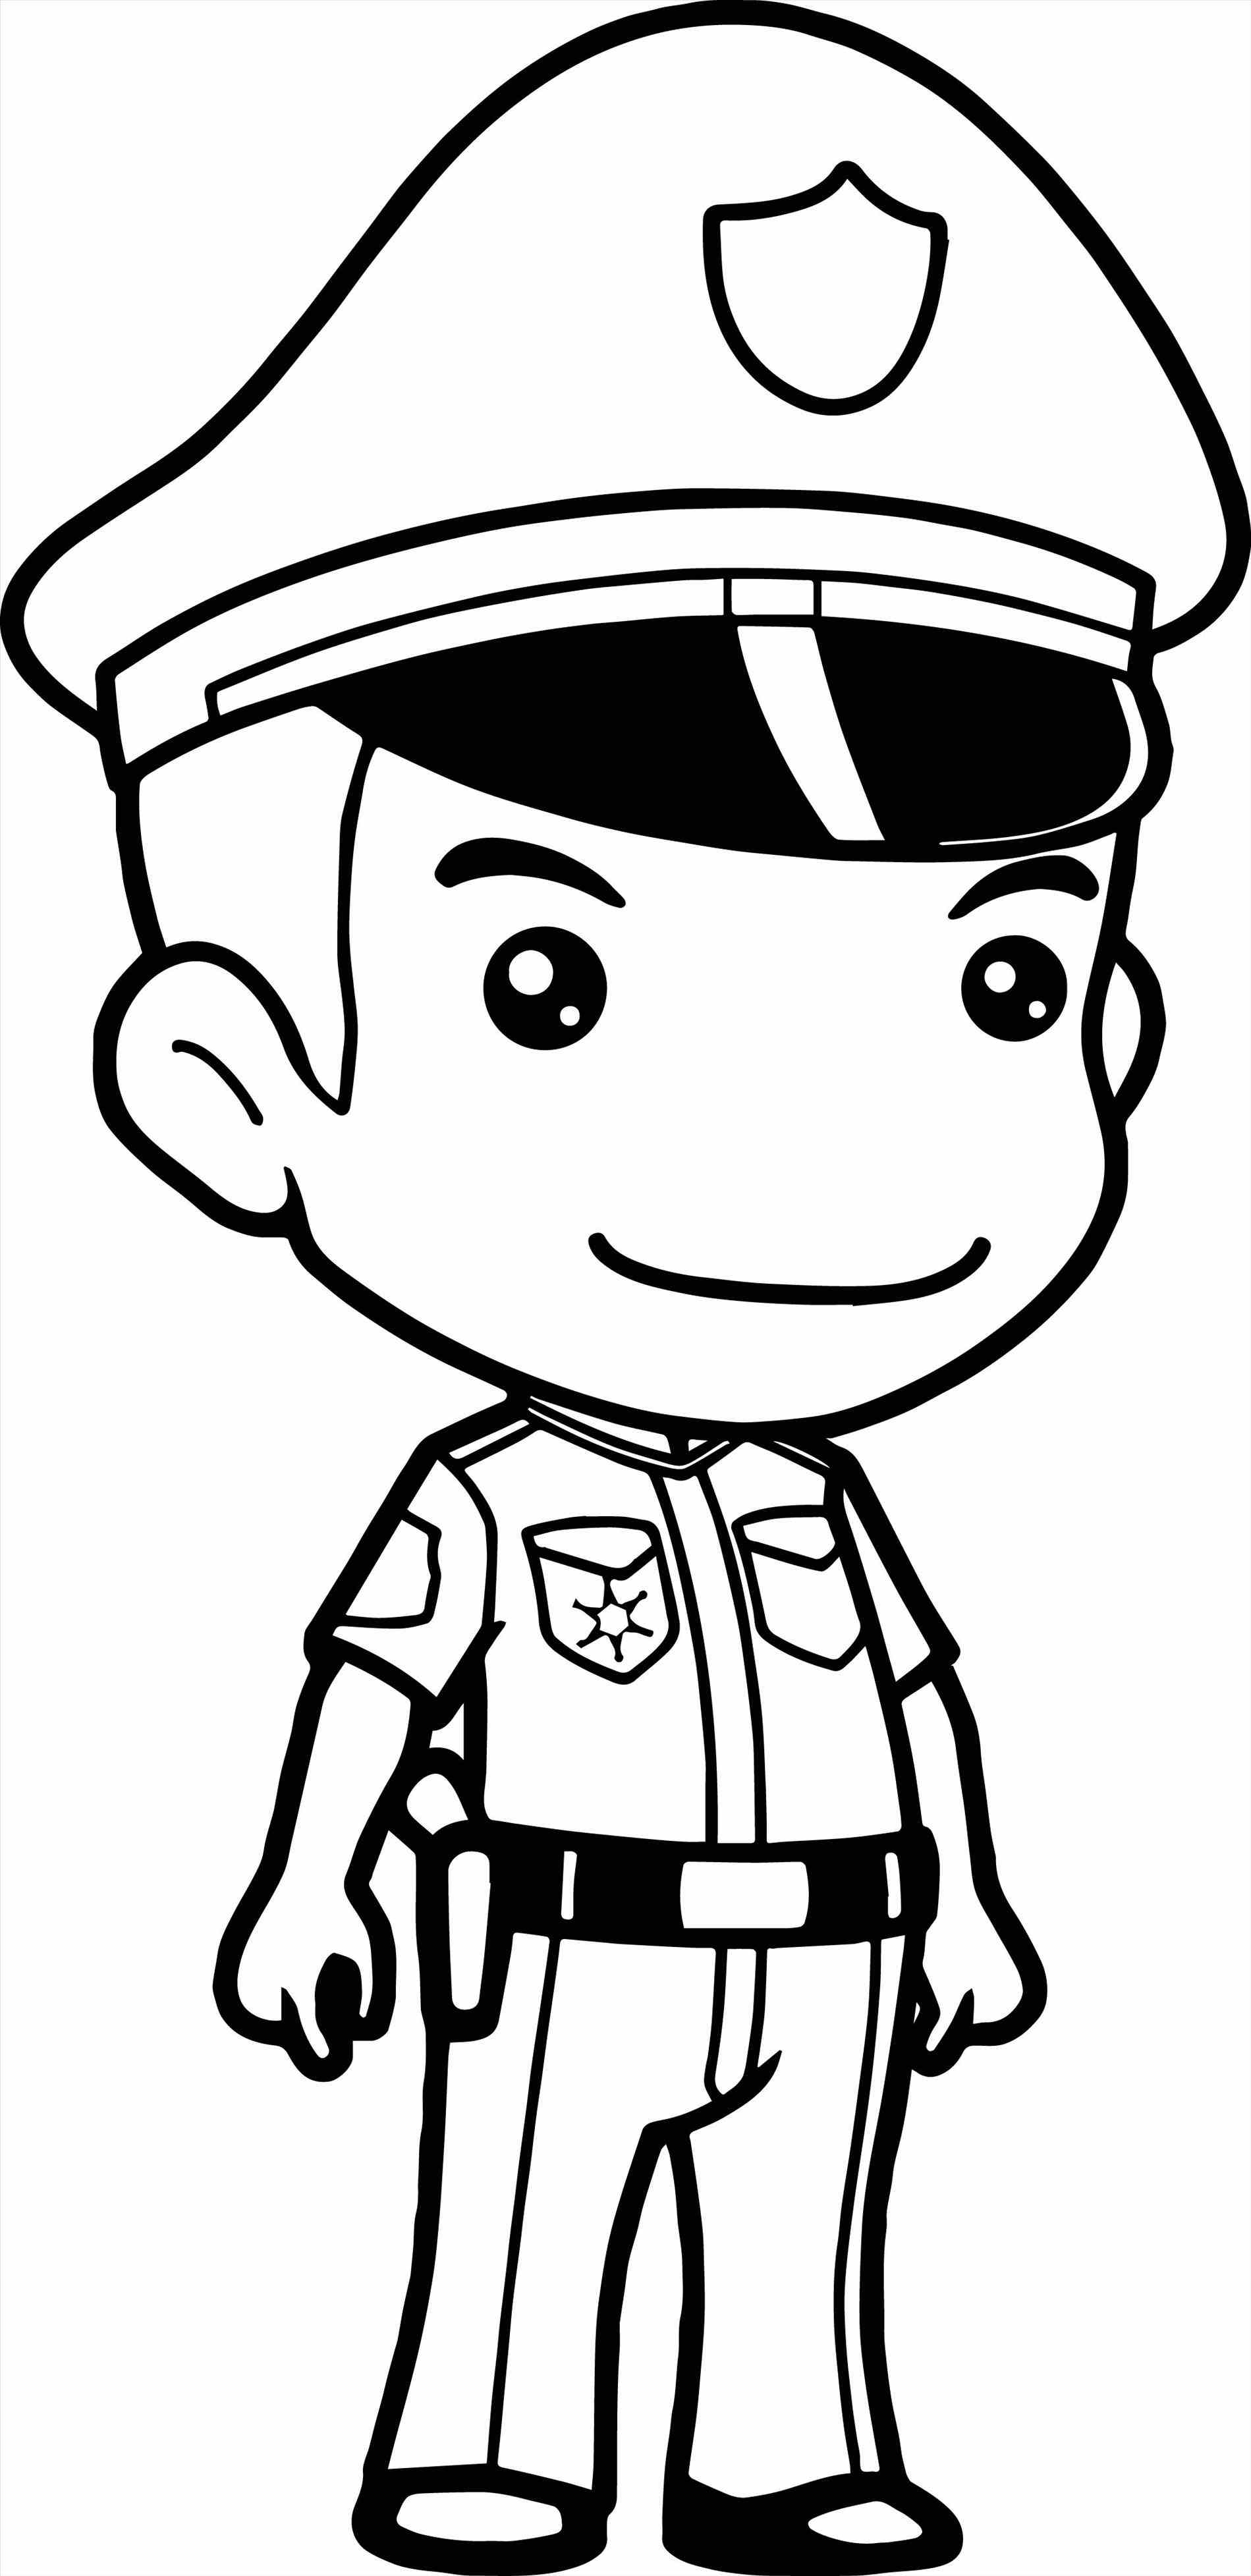 1899x3911 Anime Policeman Wecoloringpage Police New Coloring Page